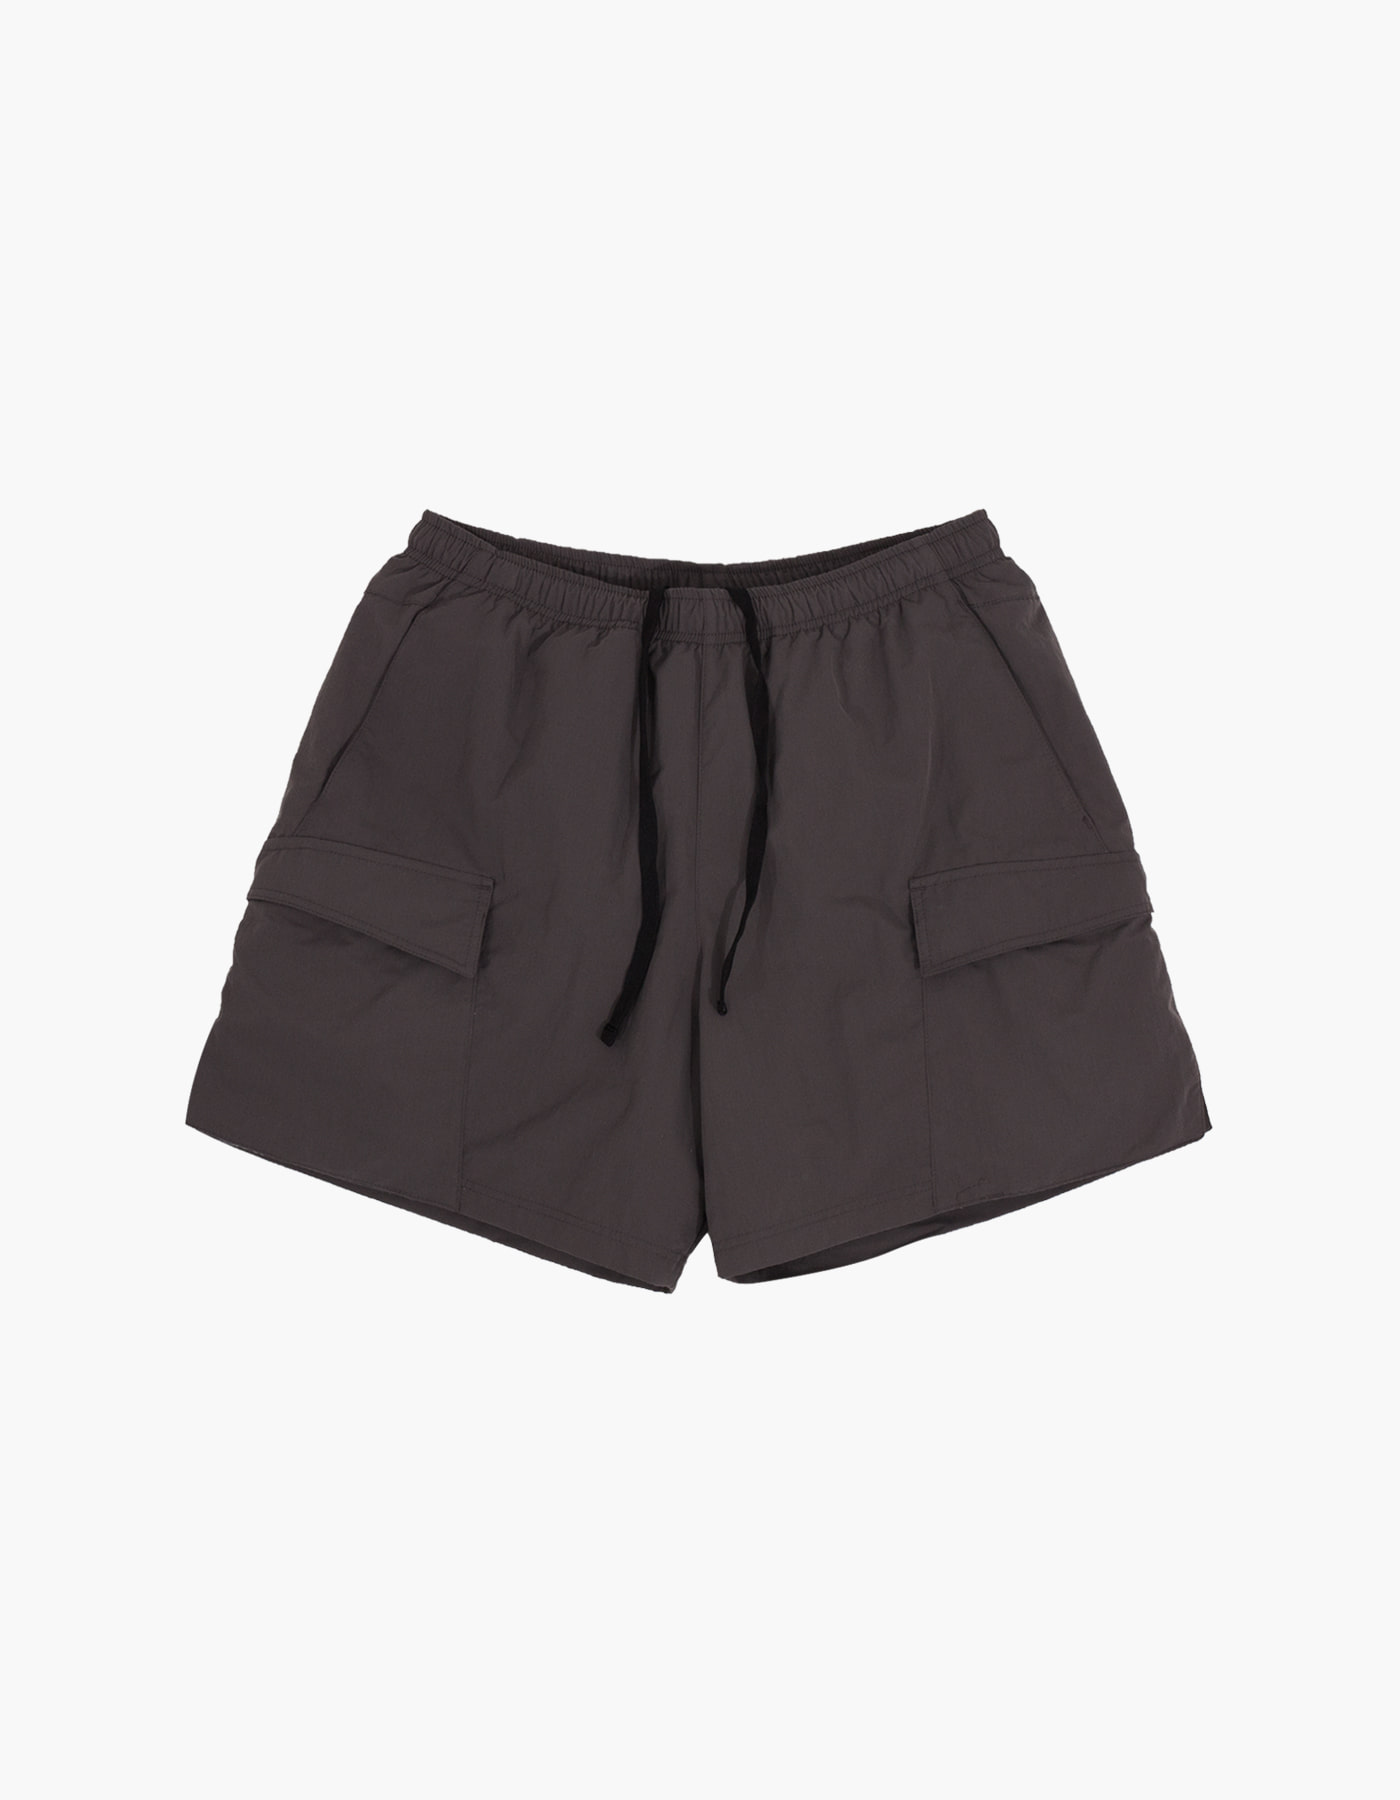 NYLON TAFFETA WASHER SHORTS / CHARCOAL